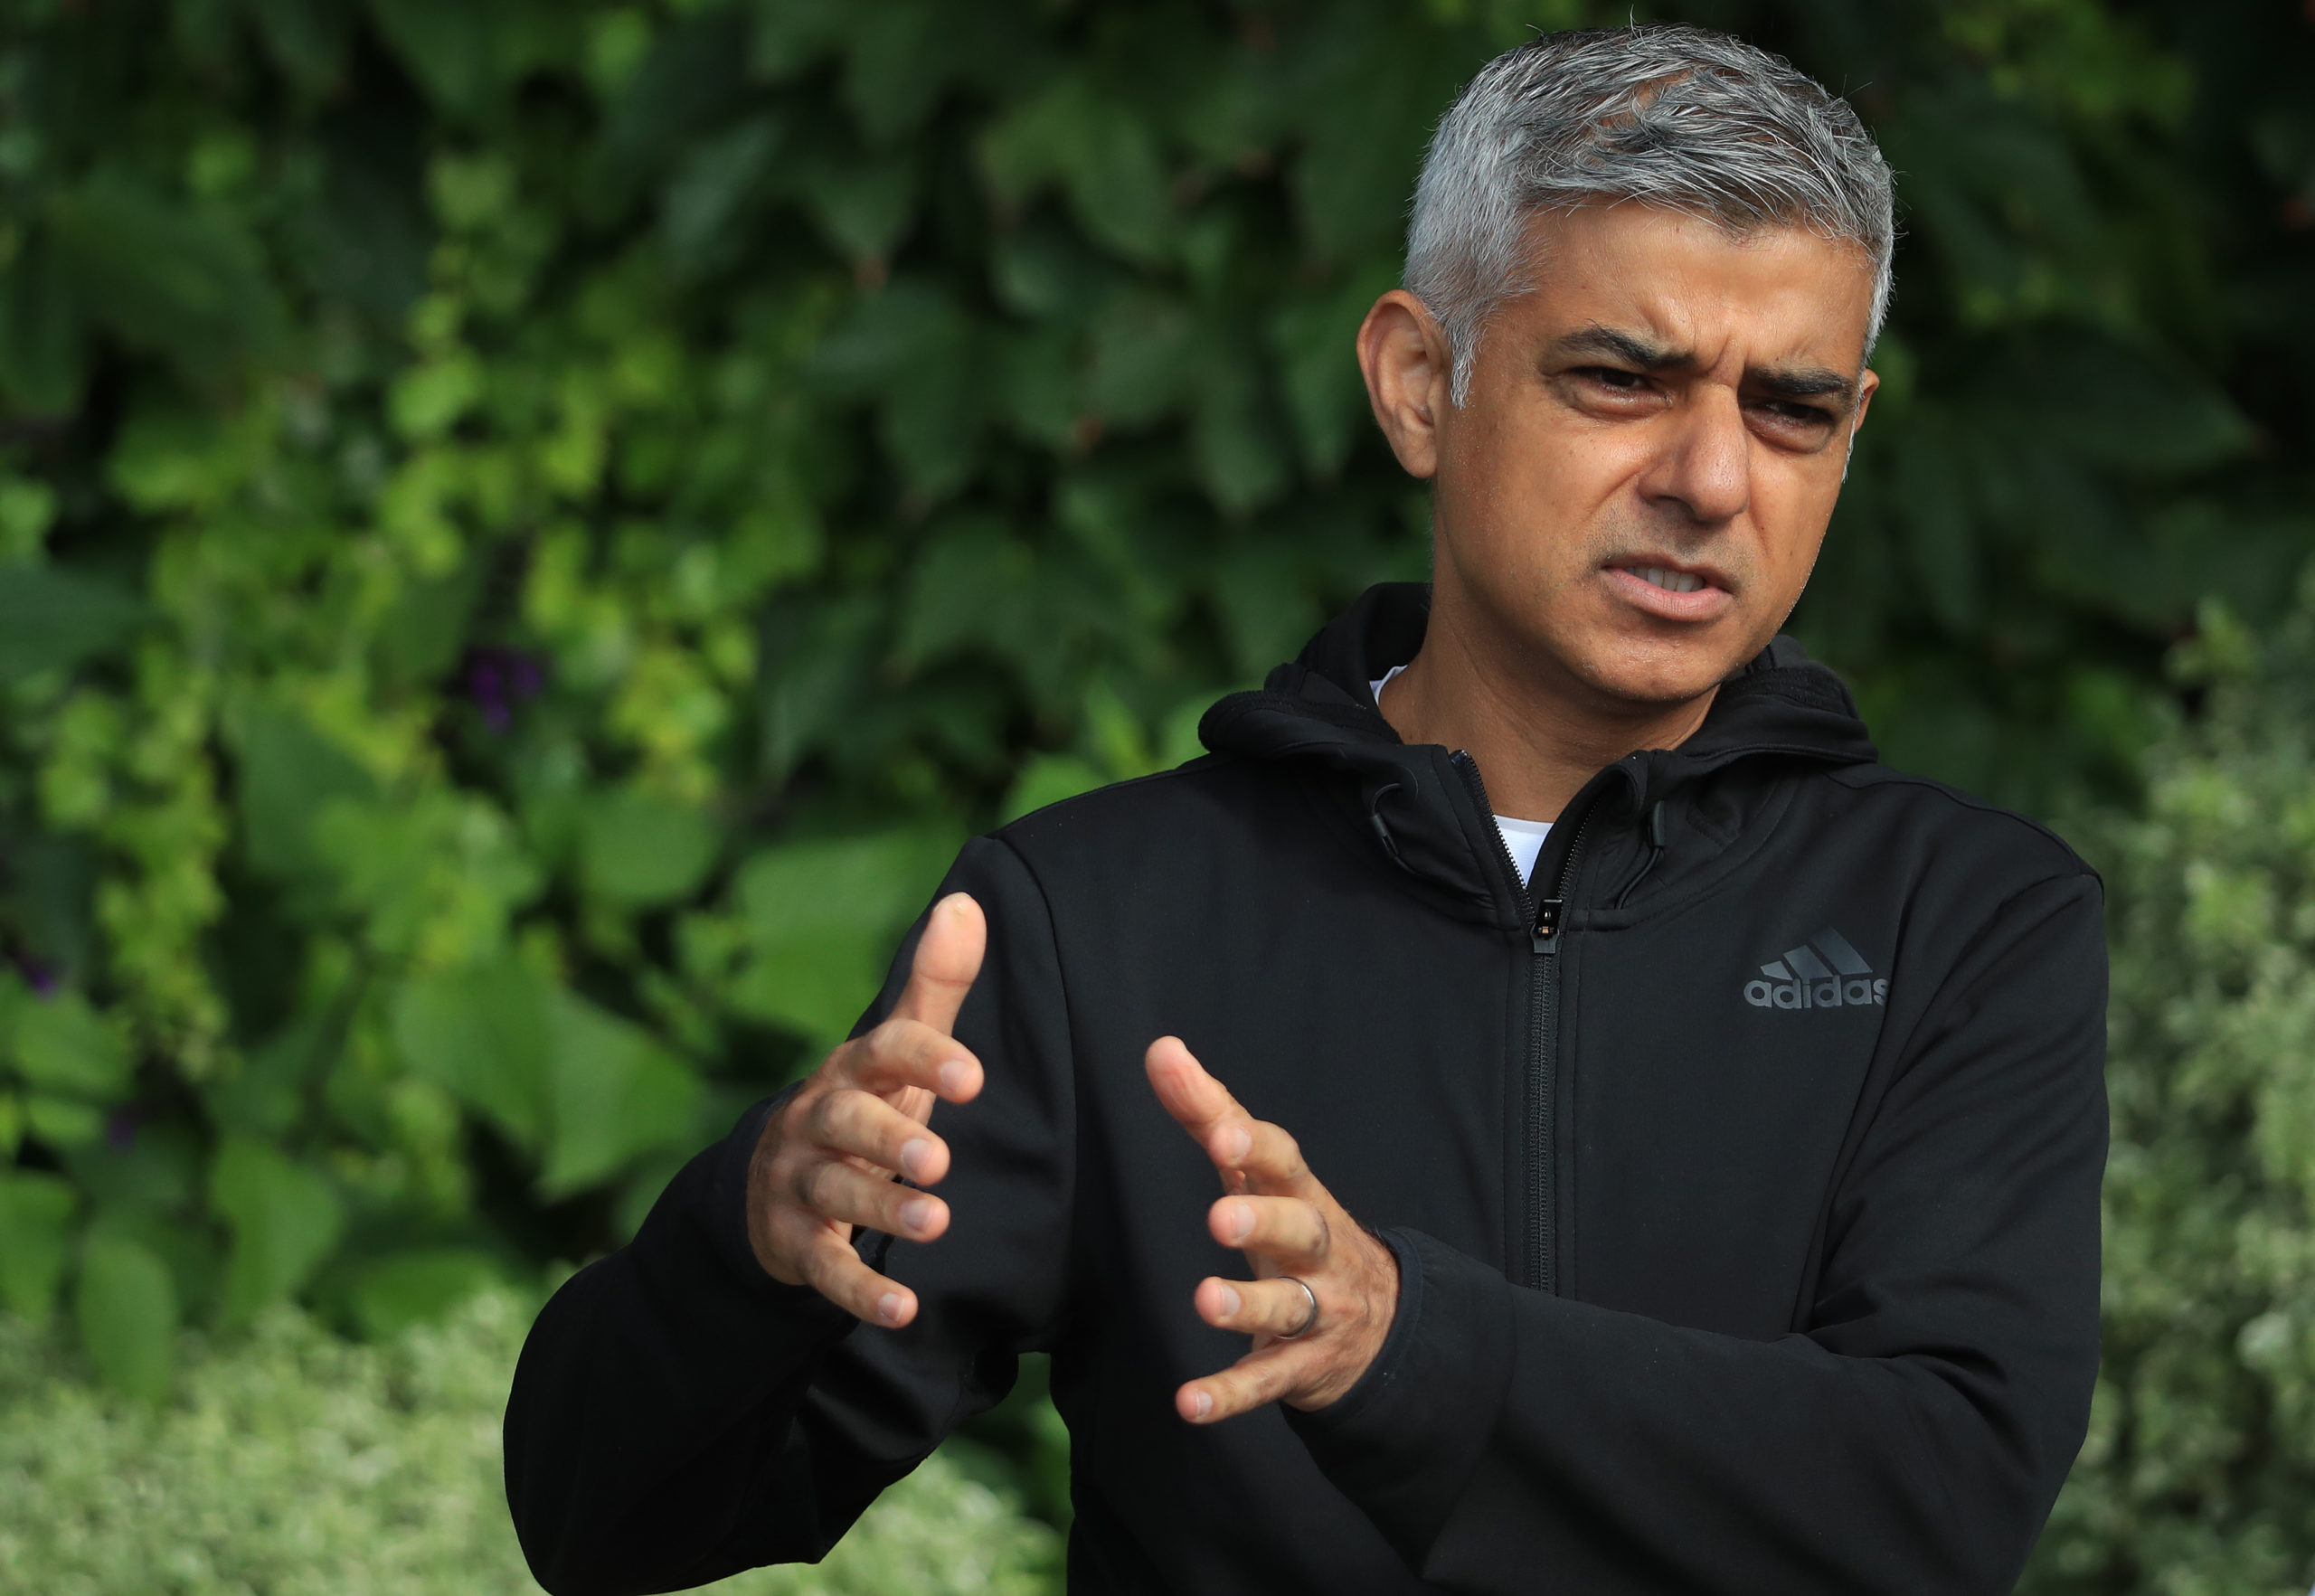 London mayor Sadiq Khan speaks to key workers at the All England Lawn Tennis Club at Wimbledon on September 4